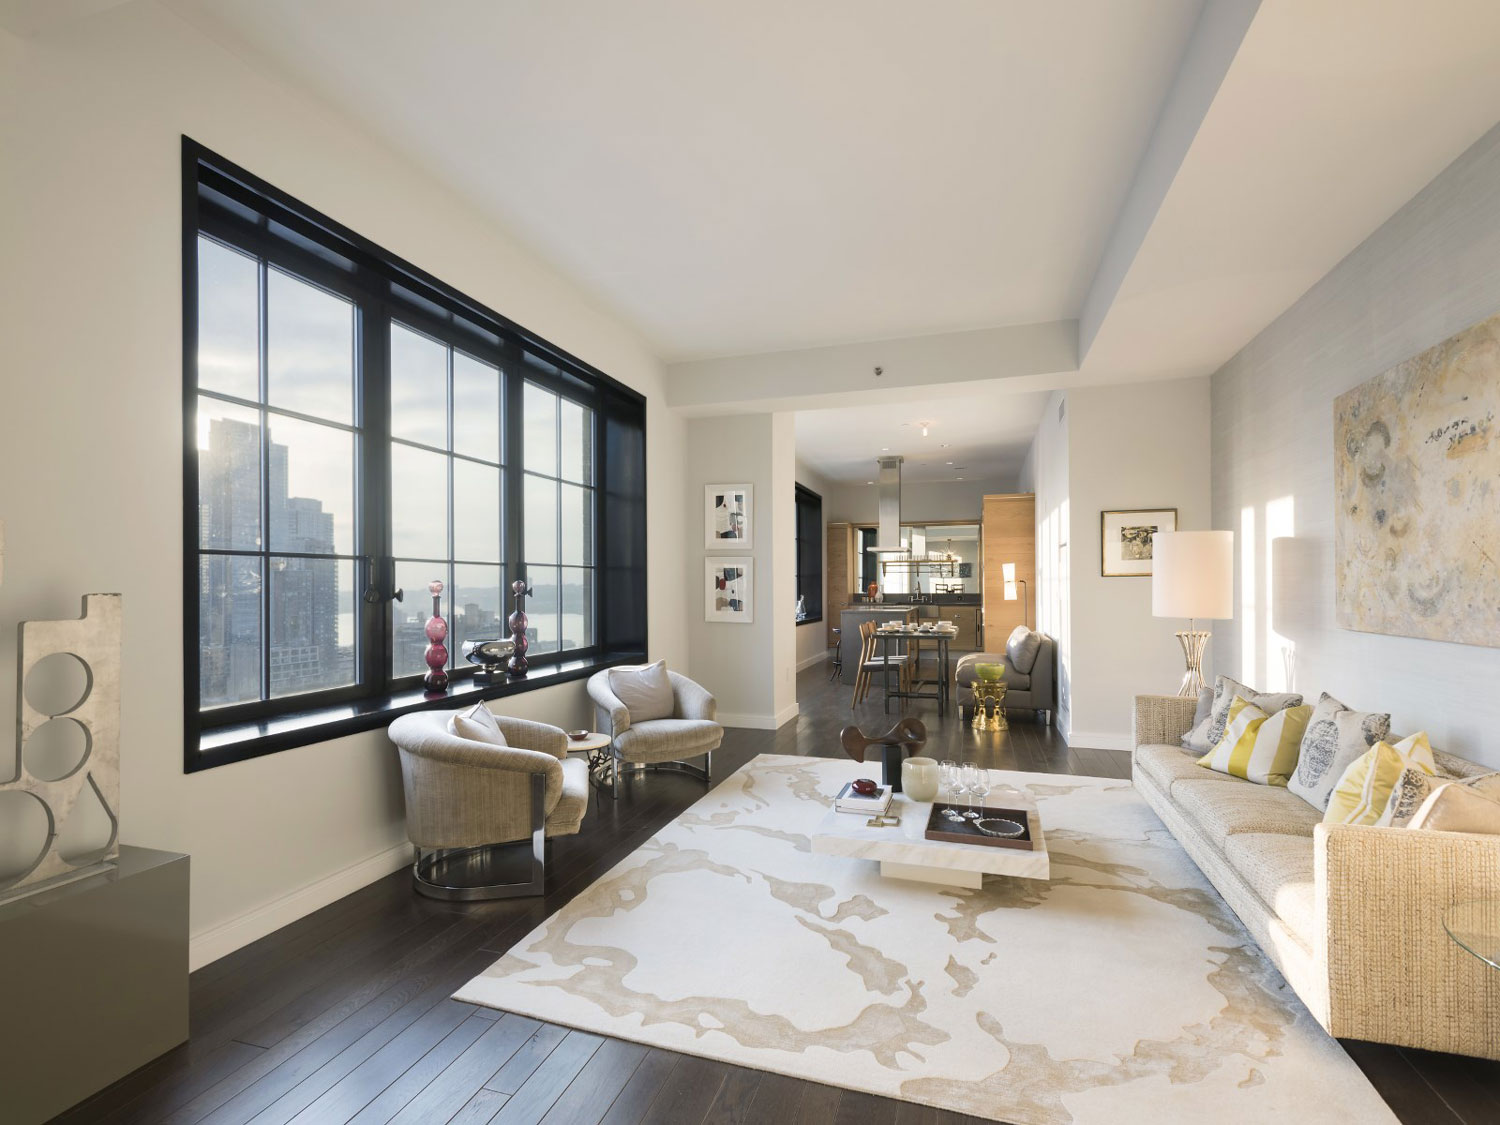 Nyc penthouses for sale in hell s kitchen stella tower for Hell s kitchen nyc apartments